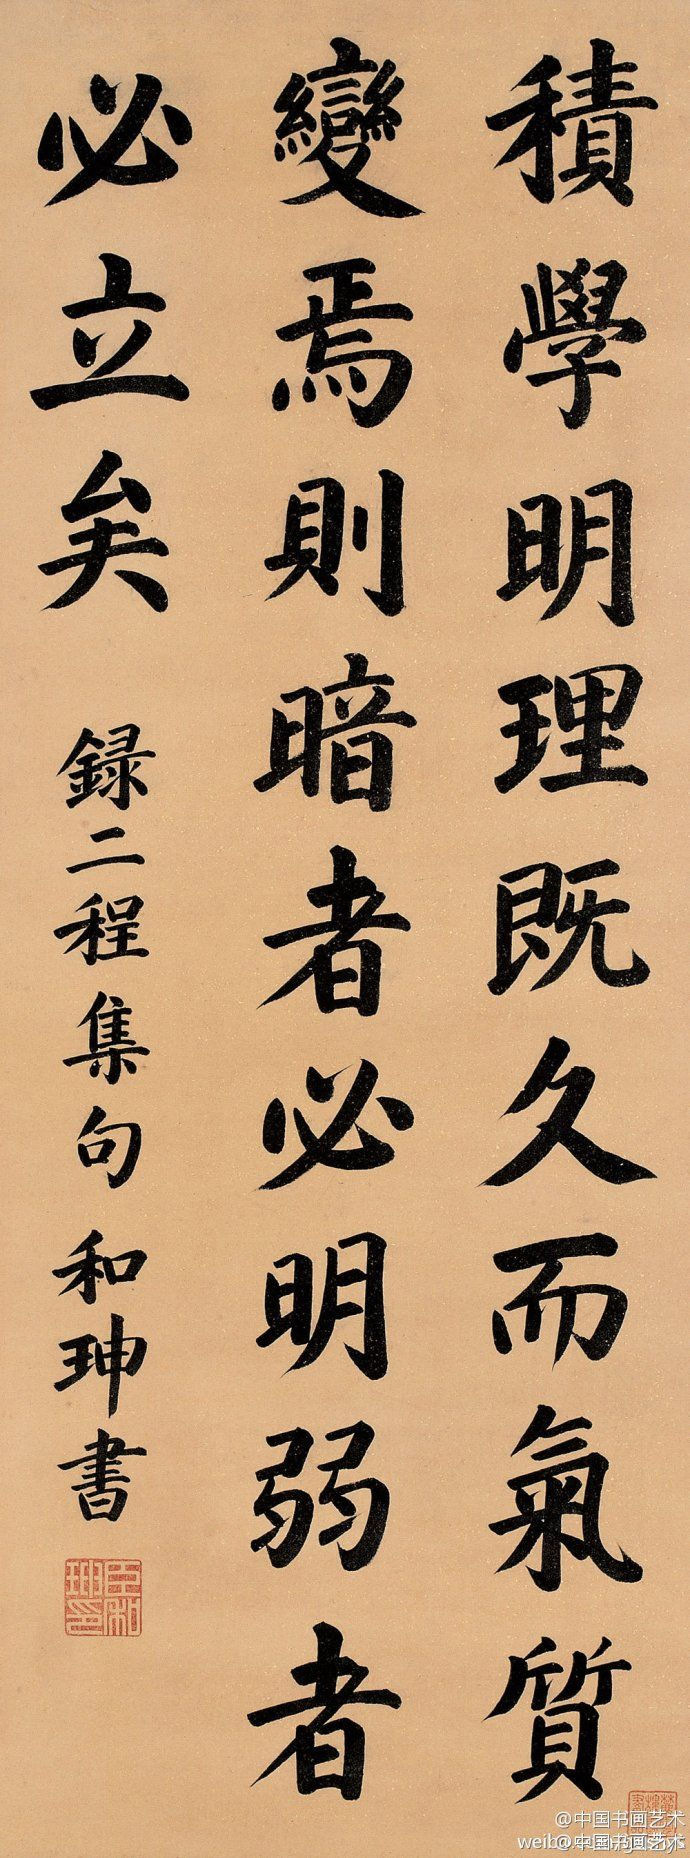 267 Best Chinese Calligraphy Images On Pinterest